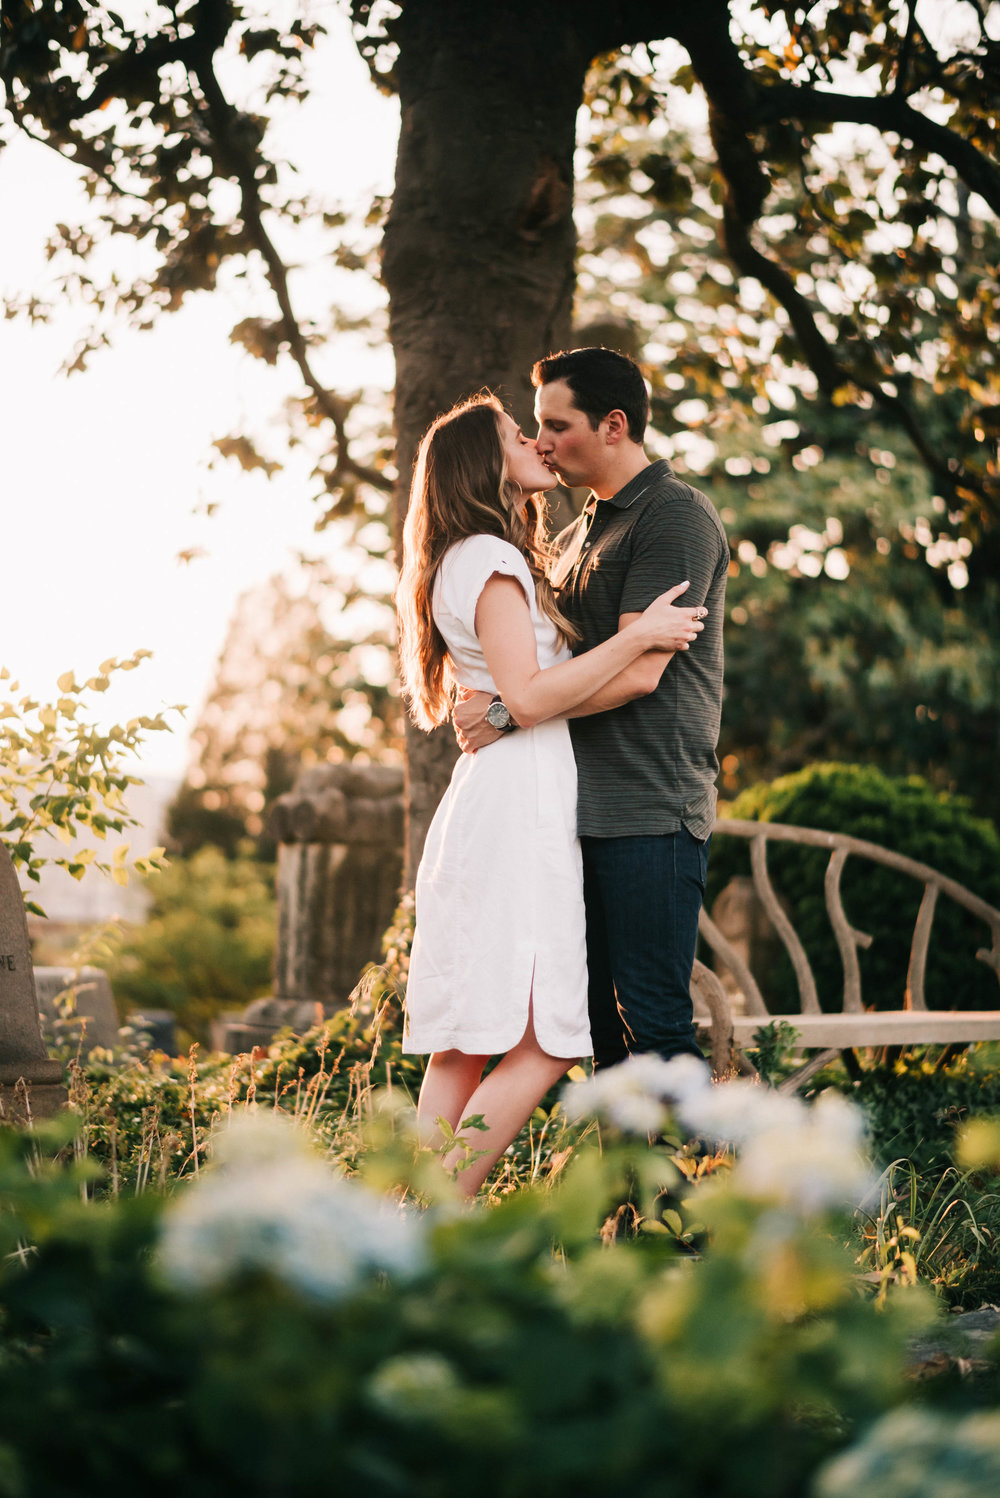 atlanta georgia portland oregon california engagement wedding nontraditional photographer-256.jpg